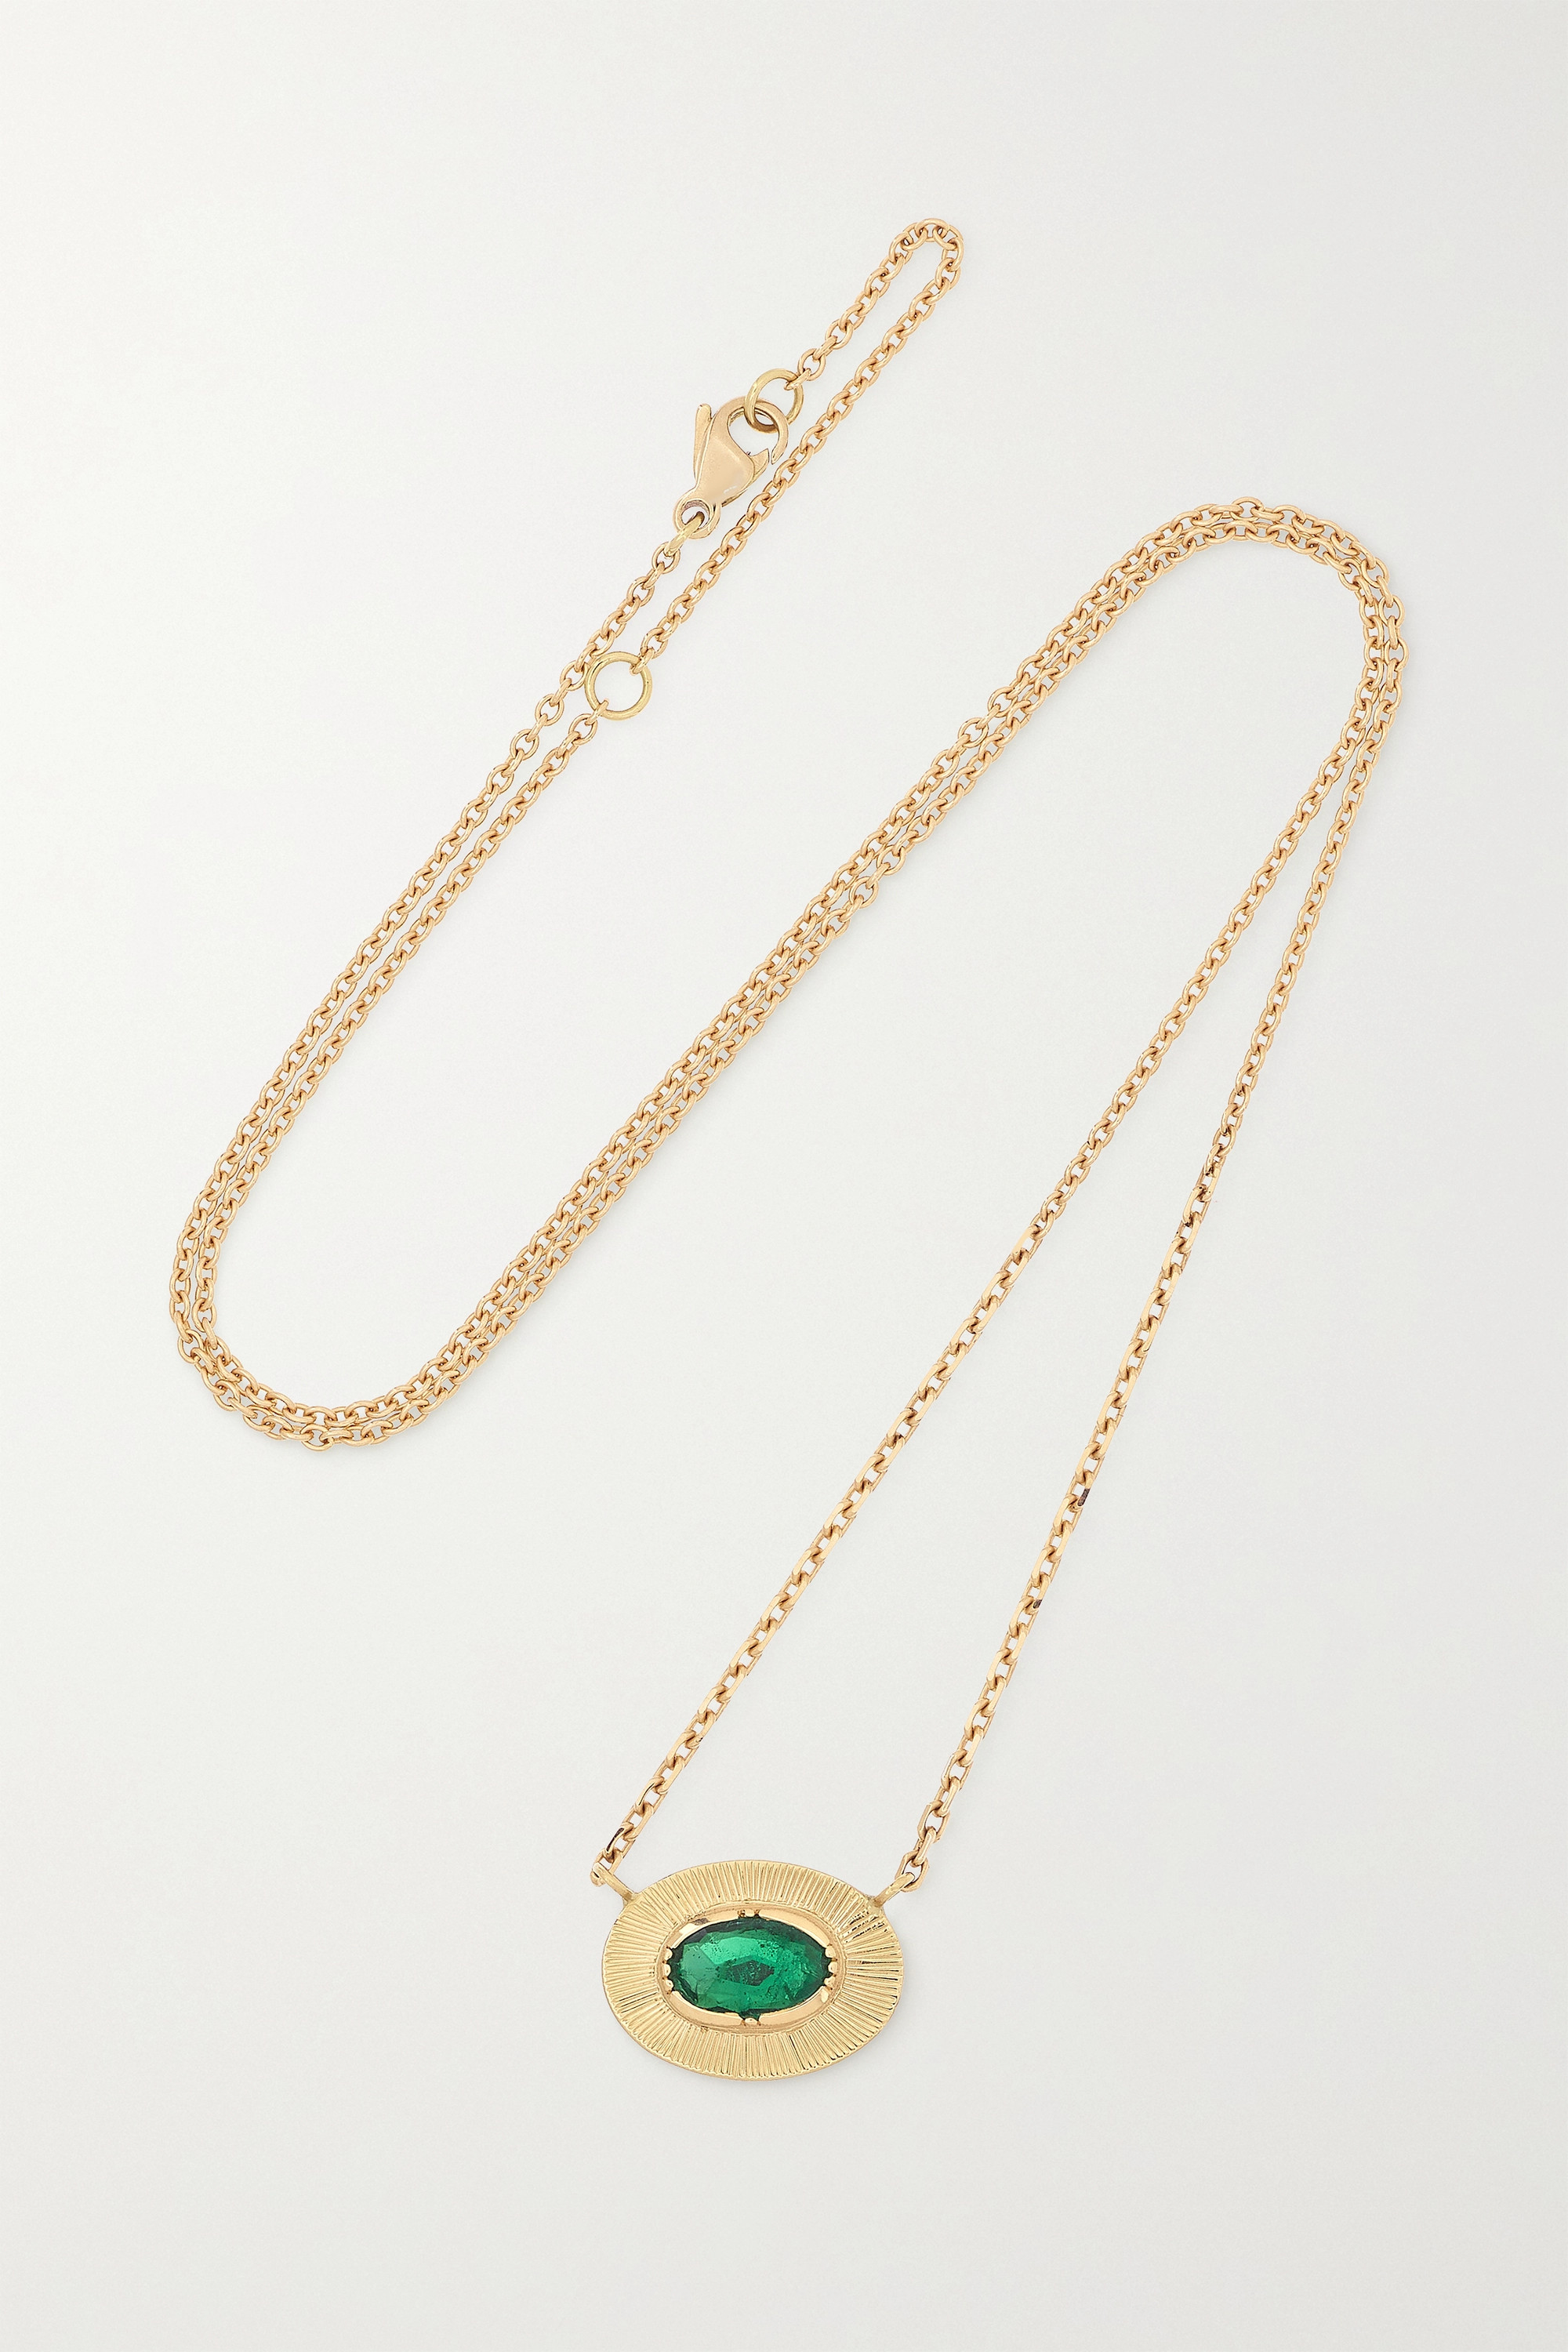 Brooke Gregson Ellipse 18-karat gold emerald necklace